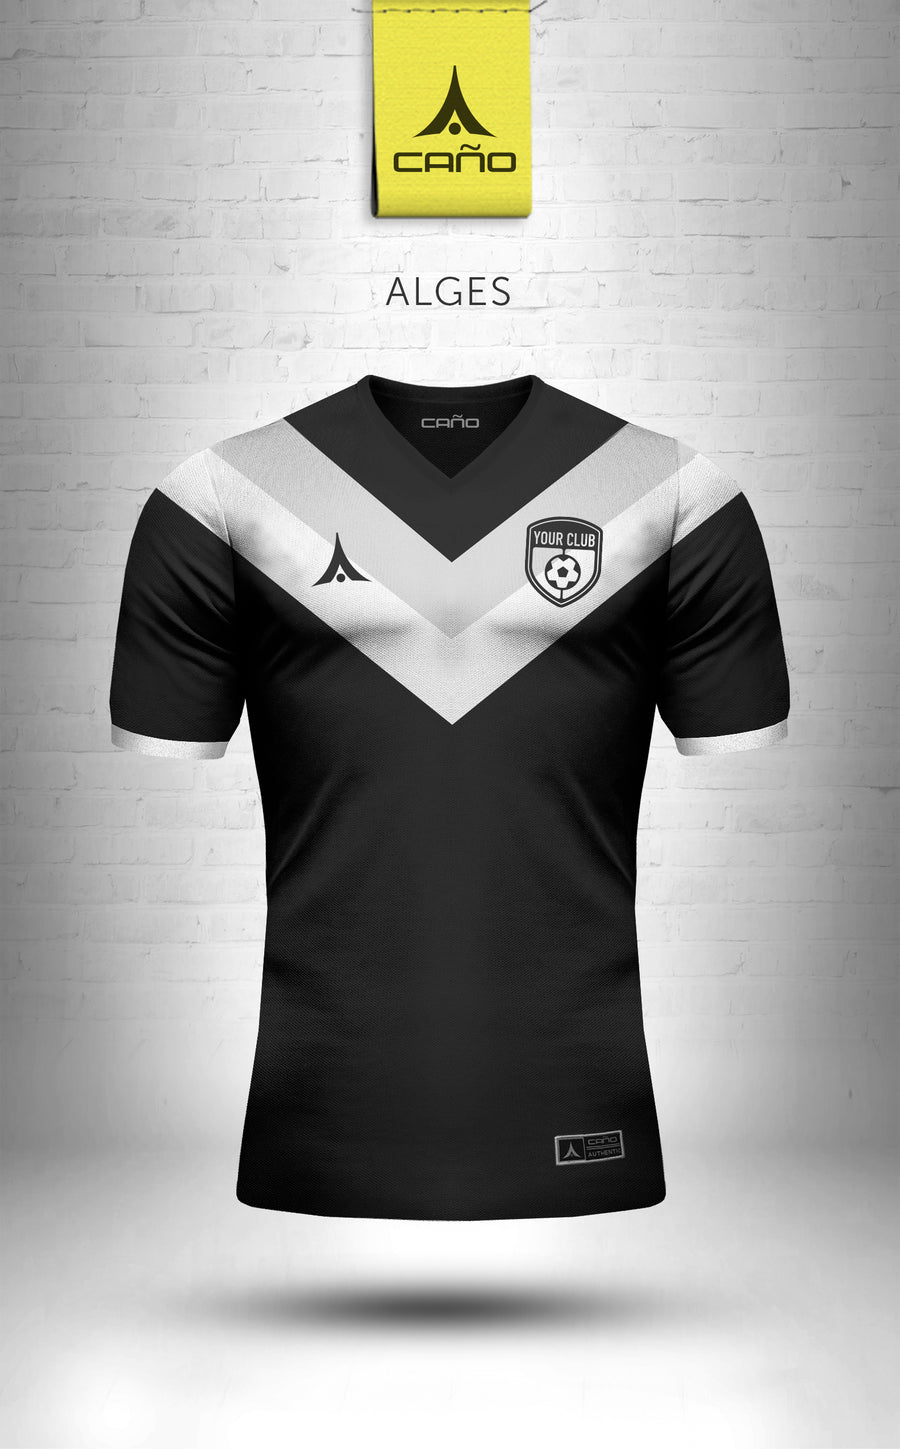 Alges in black/white